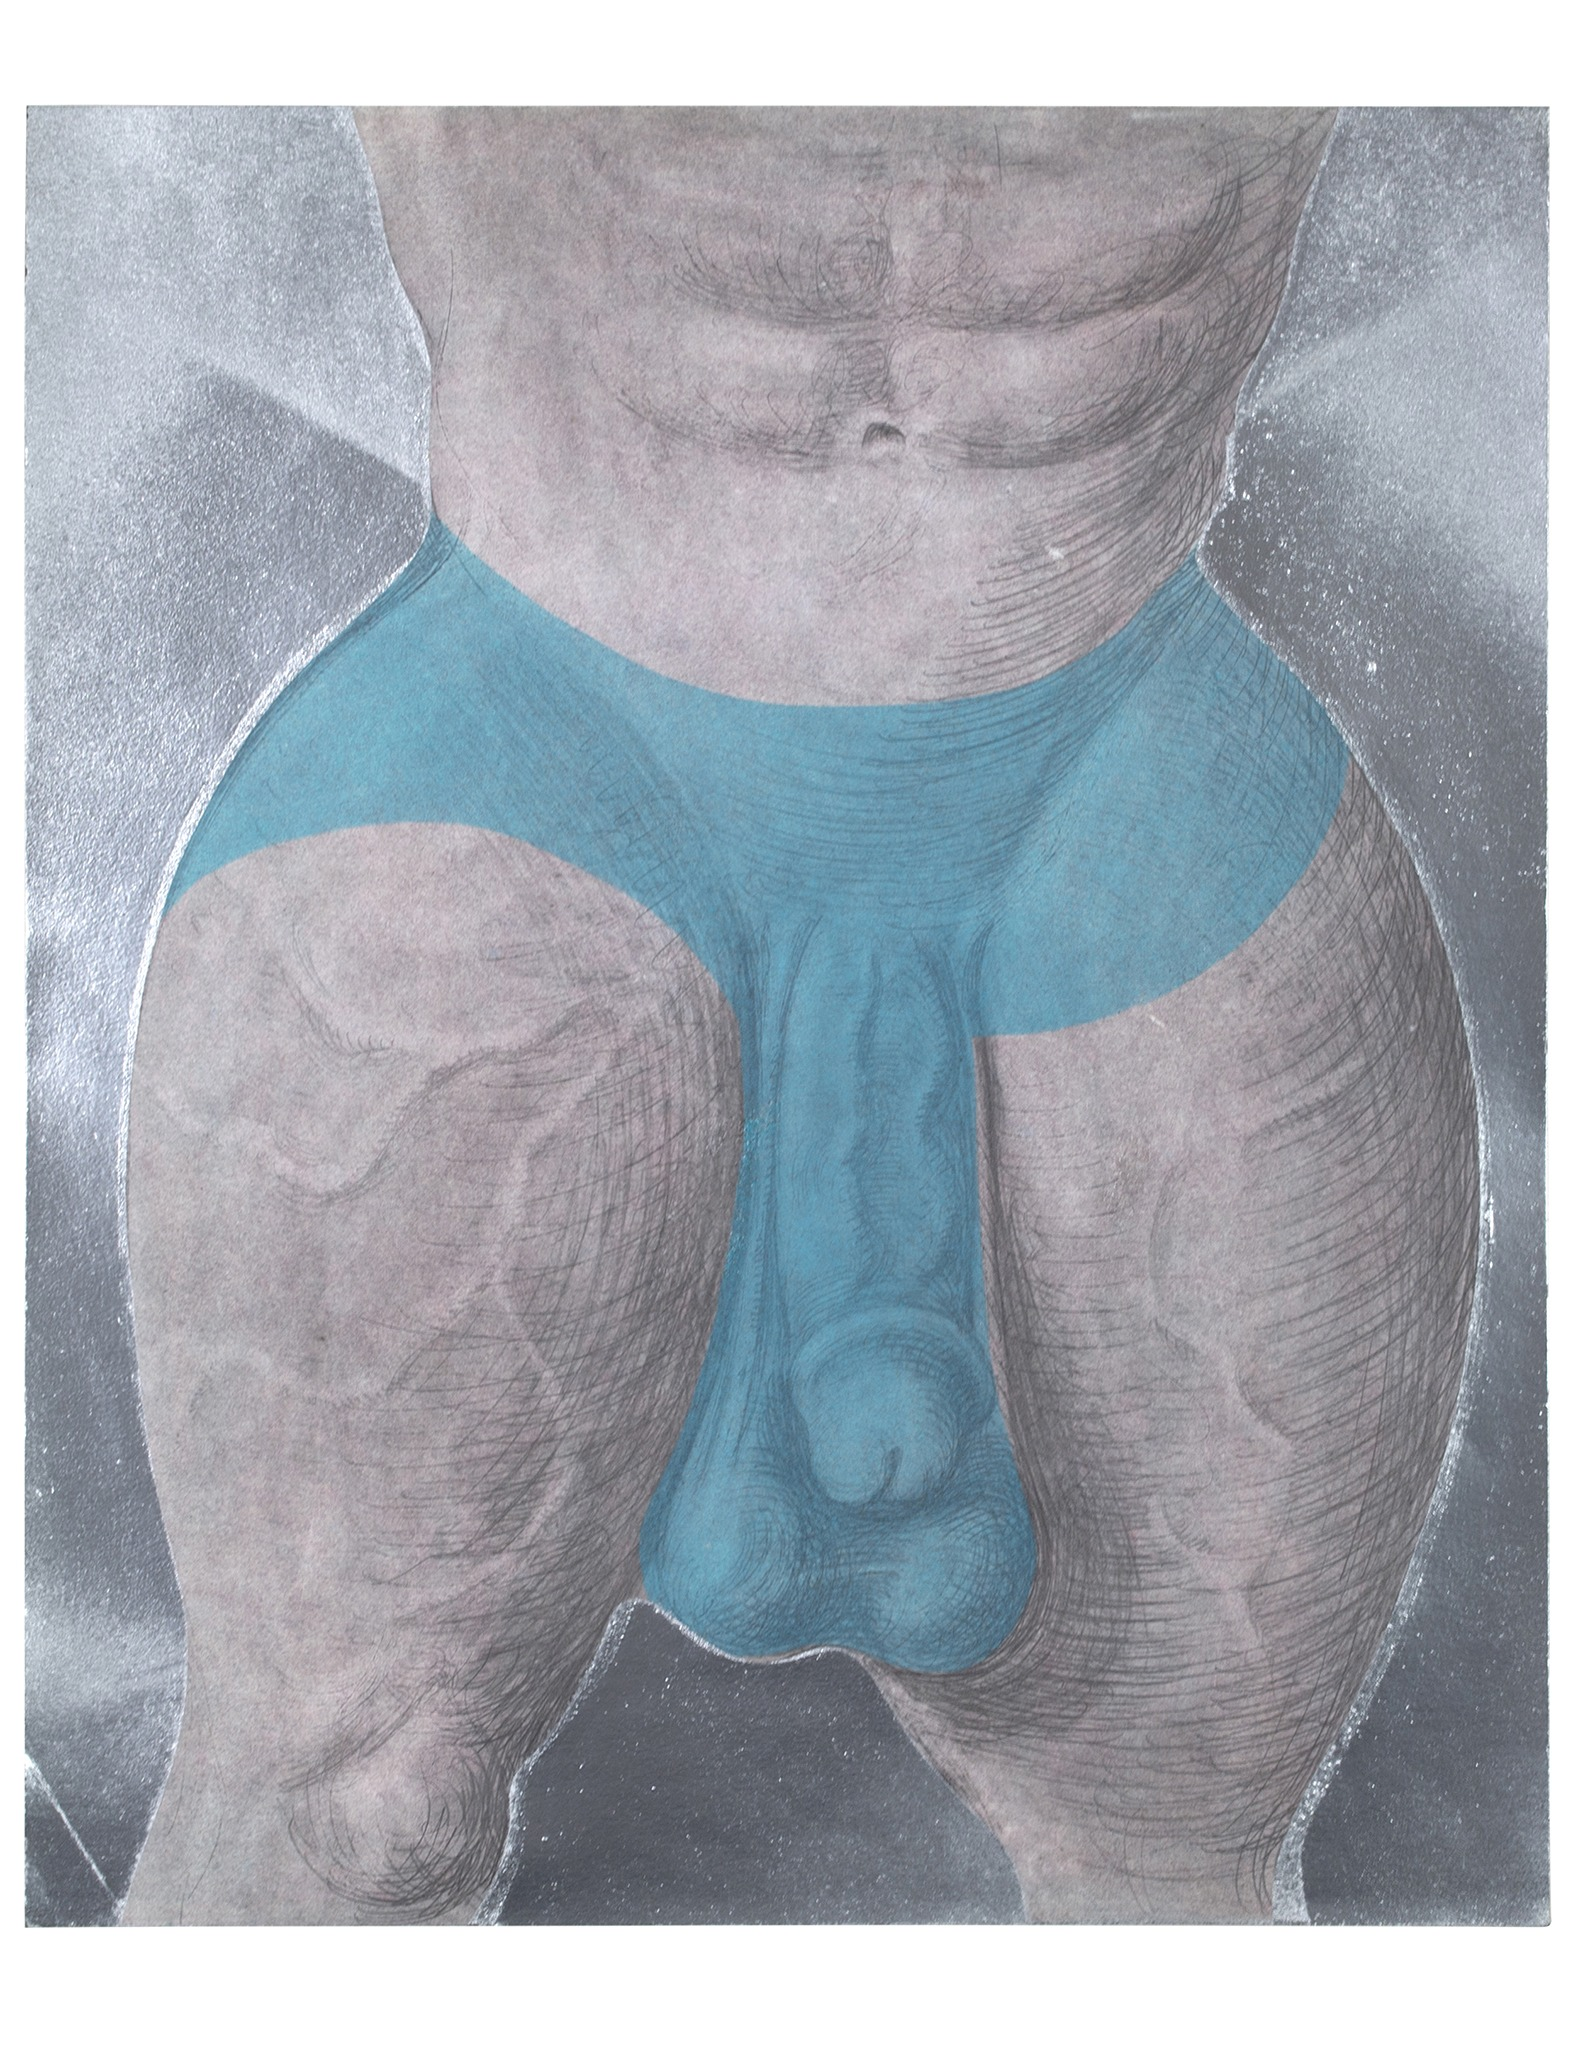 A painting by Mike Goodlett titled Untitled, dated 2020.